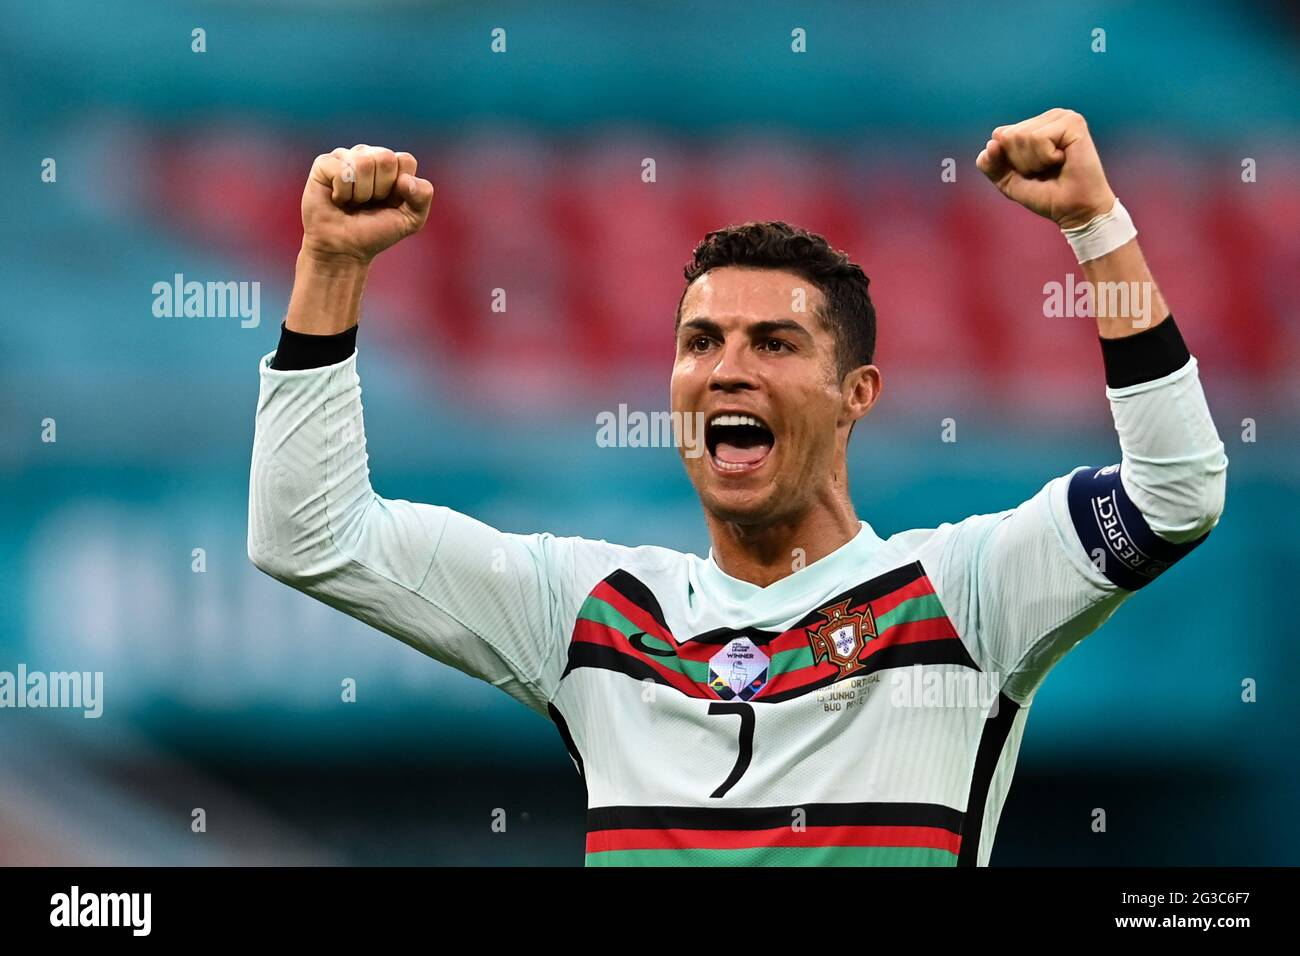 15 June 2021, Hungary, Budapest: Football: European Championship, Hungary - Portugal, preliminary round, Group F, Matchday 1 at Puskás Arena. Portugal's Cristiano Ronaldo celebrates the victory of the Portuguese. Important: For editorial news reporting purposes only. Not used for commercial or marketing purposes without prior written approval of UEFA. Images must appear as still images and must not emulate match action video footage. Photographs published in online publications (whether via the Internet or otherwise) shall have an interval of at least 20 seconds between the posting. Photo: Rob Stock Photo